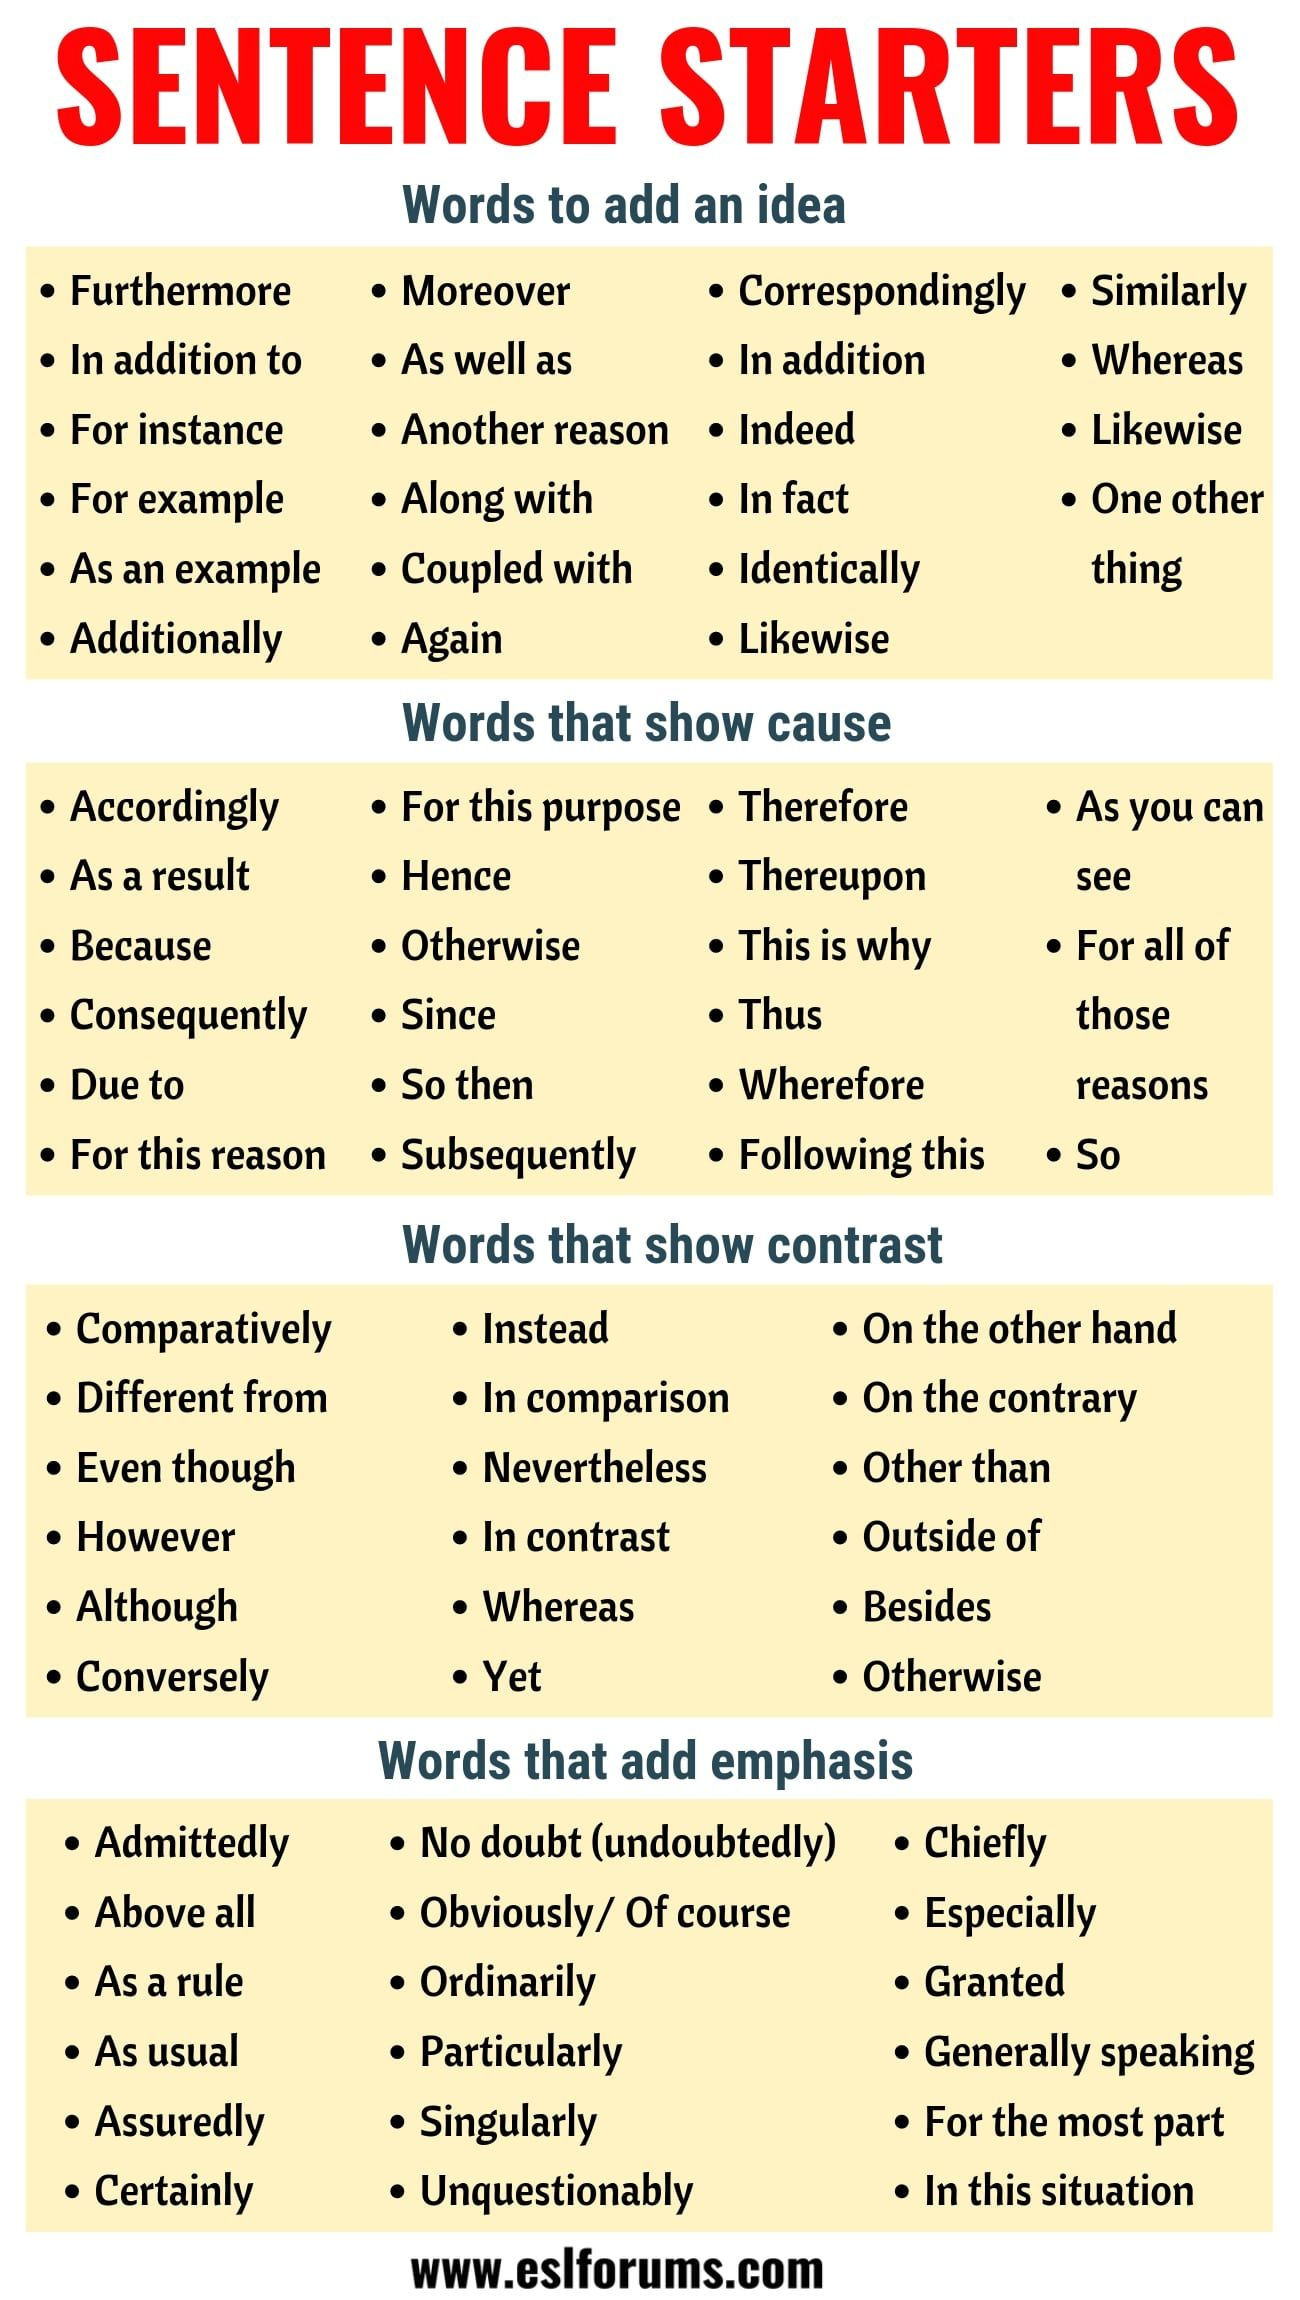 Sentence Starters Useful Words and Phrases You Can Use As